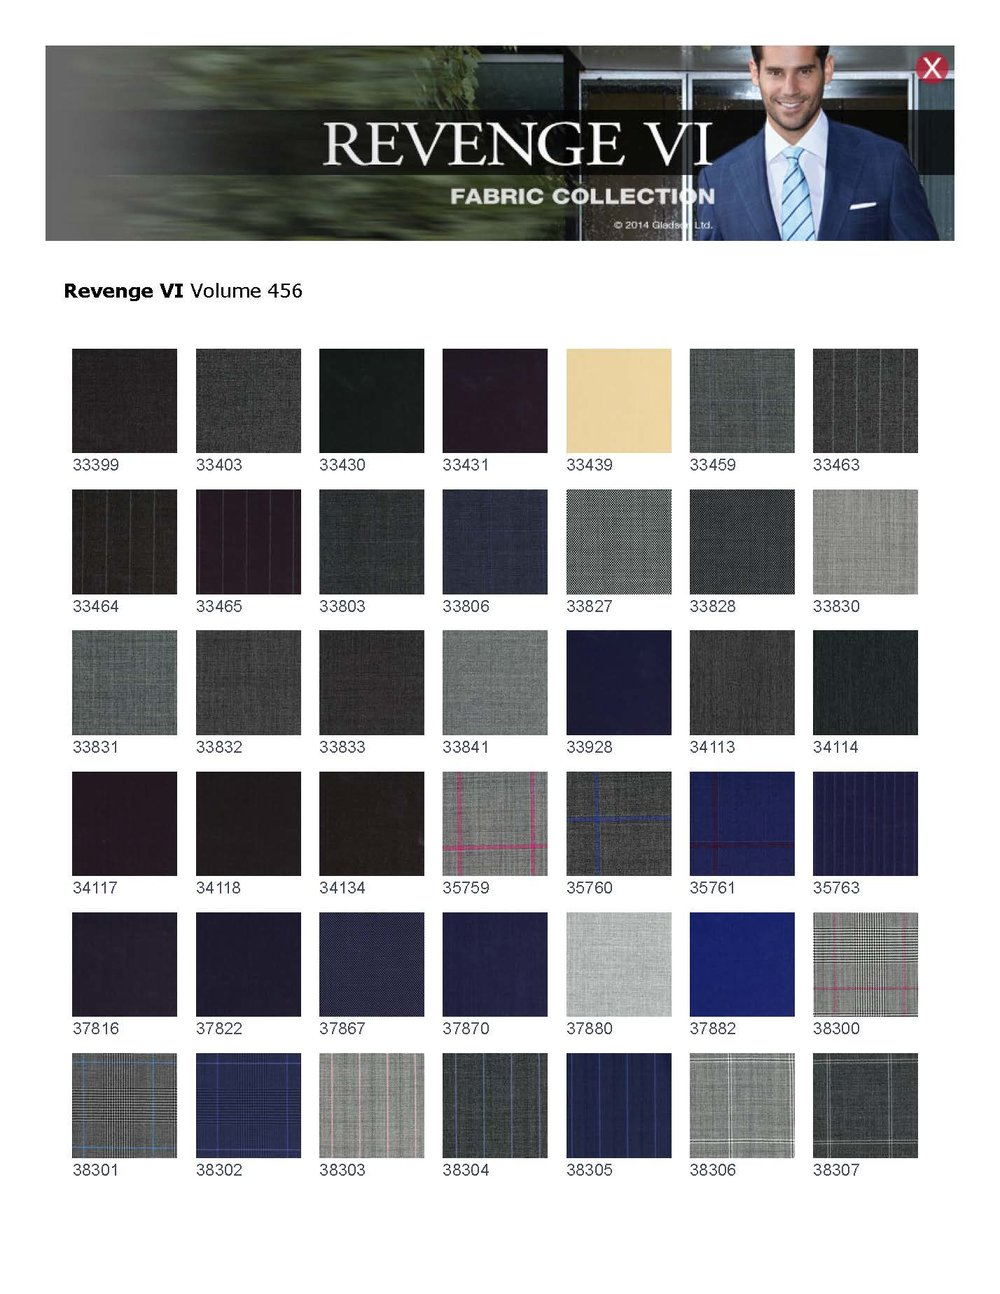 Revenge Fabric collection _Page_1.jpg